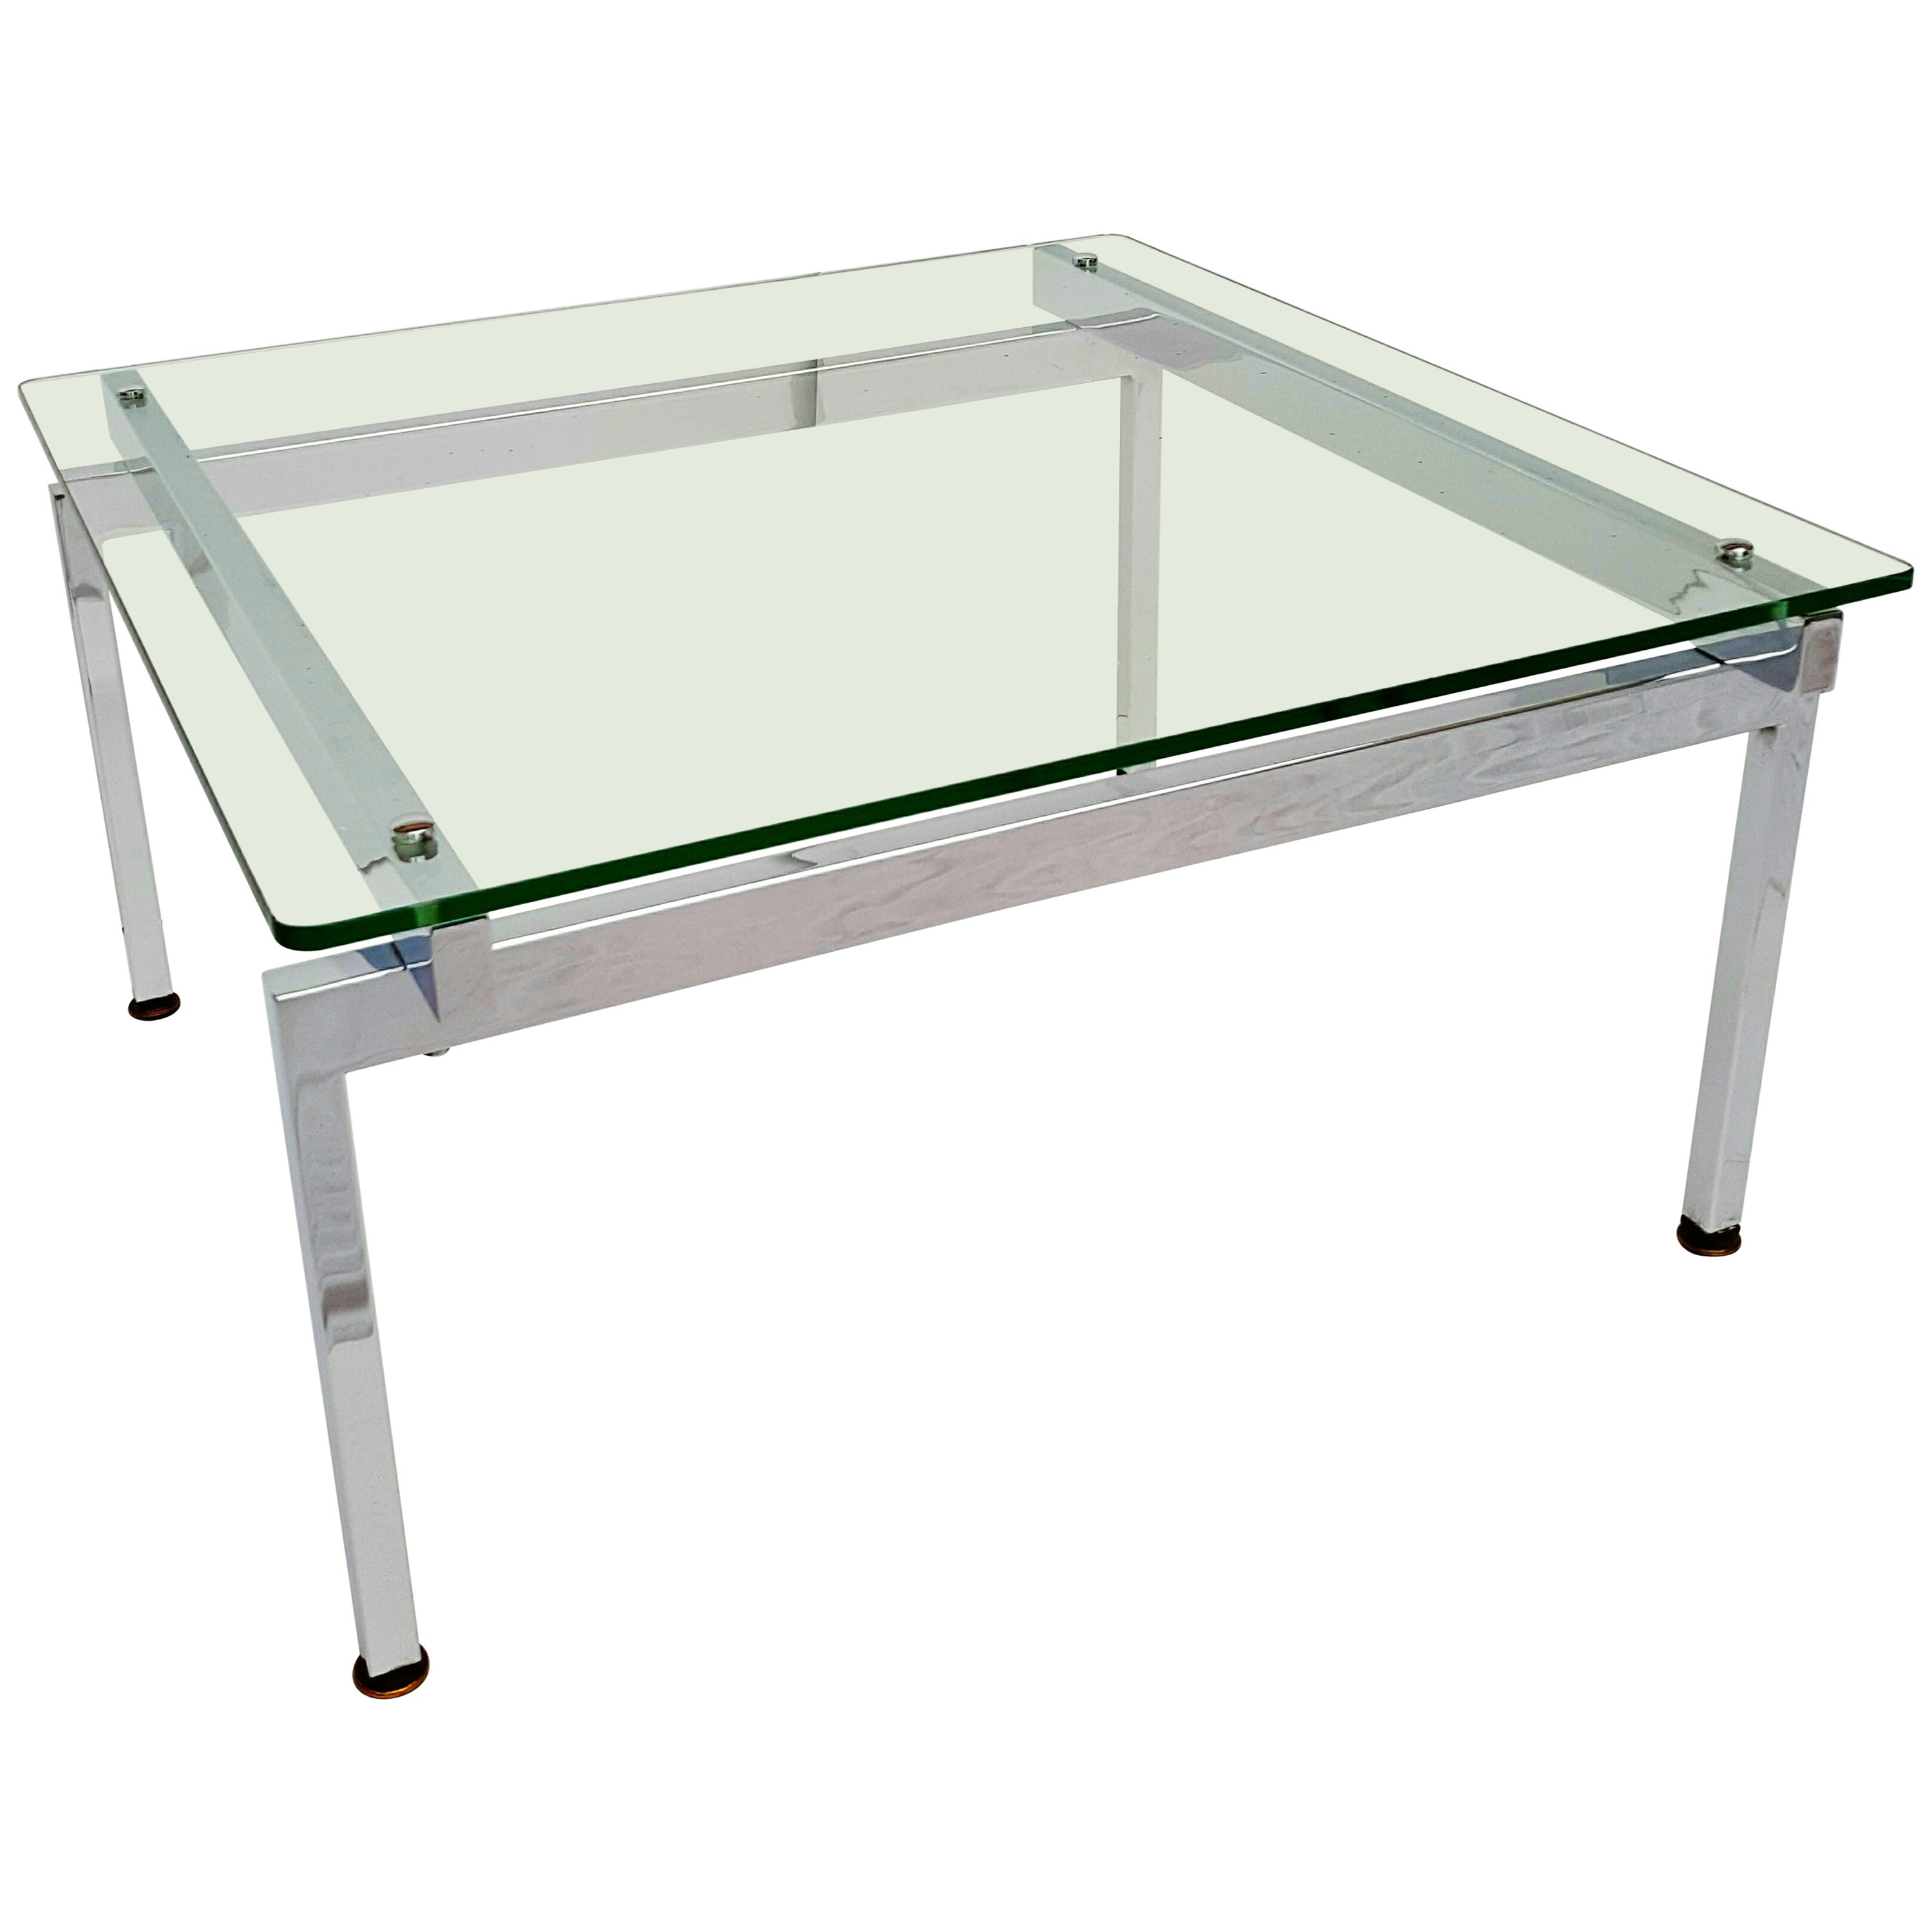 French Vintage Chrome and Glass Coffee Table, 1970s